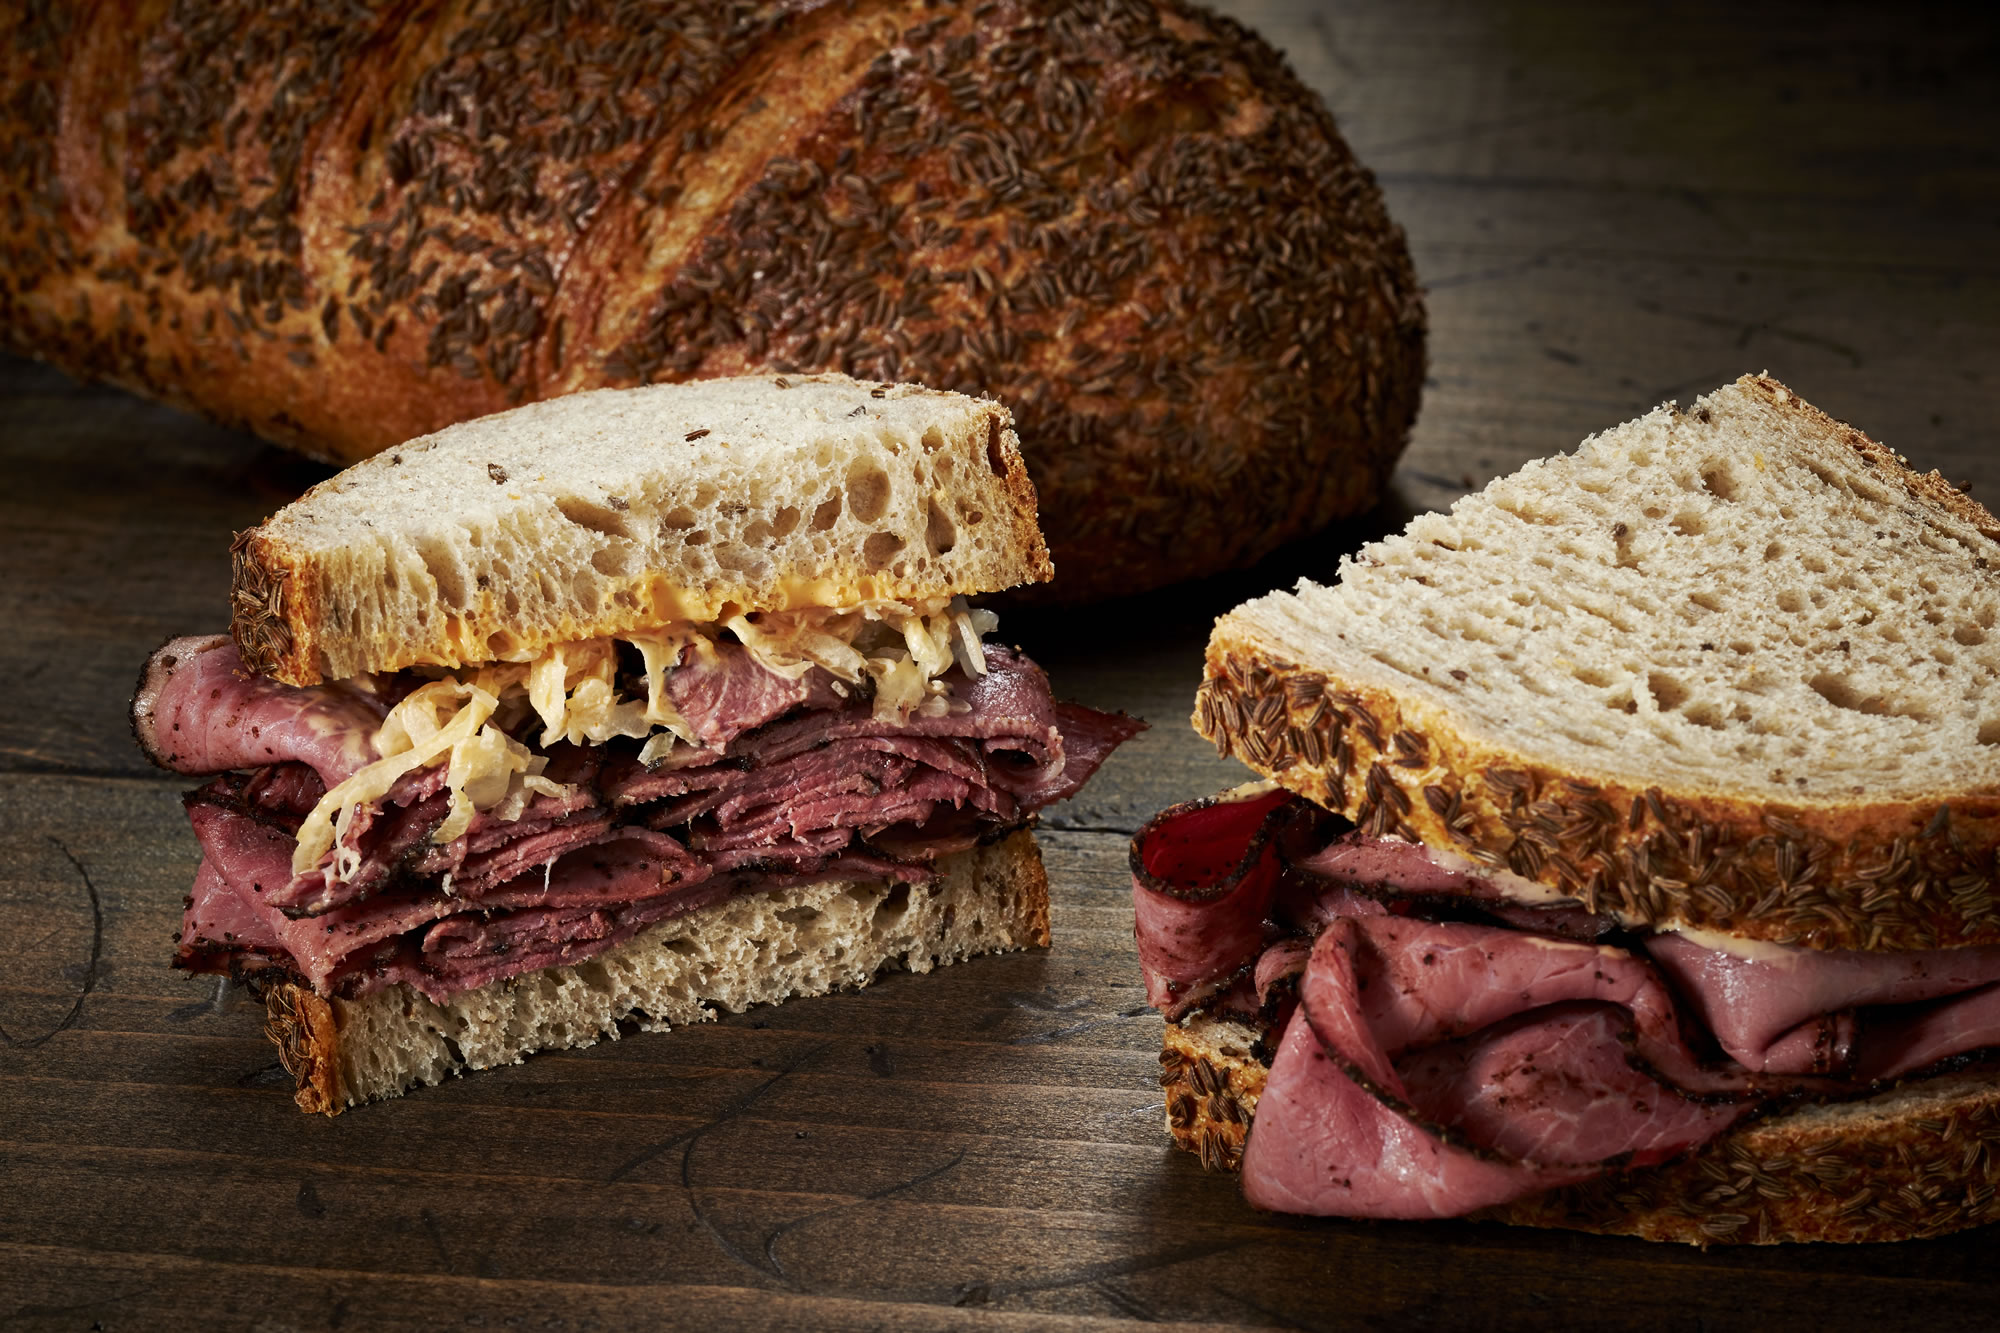 ... of a New York deli, especially with heaps of tender pastrami